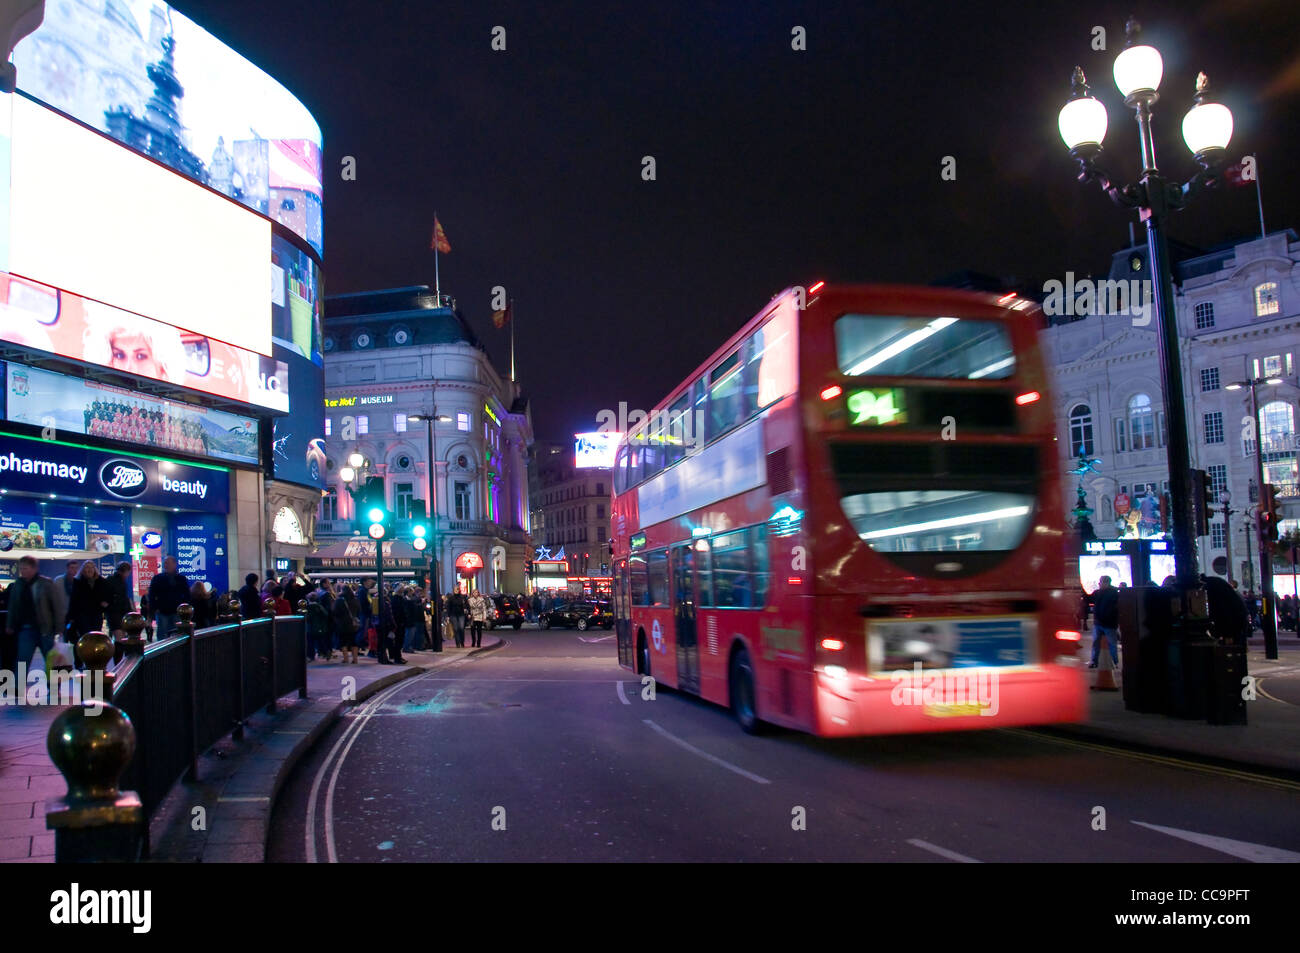 Picadilly circus by night - London (UK) - Stock Image